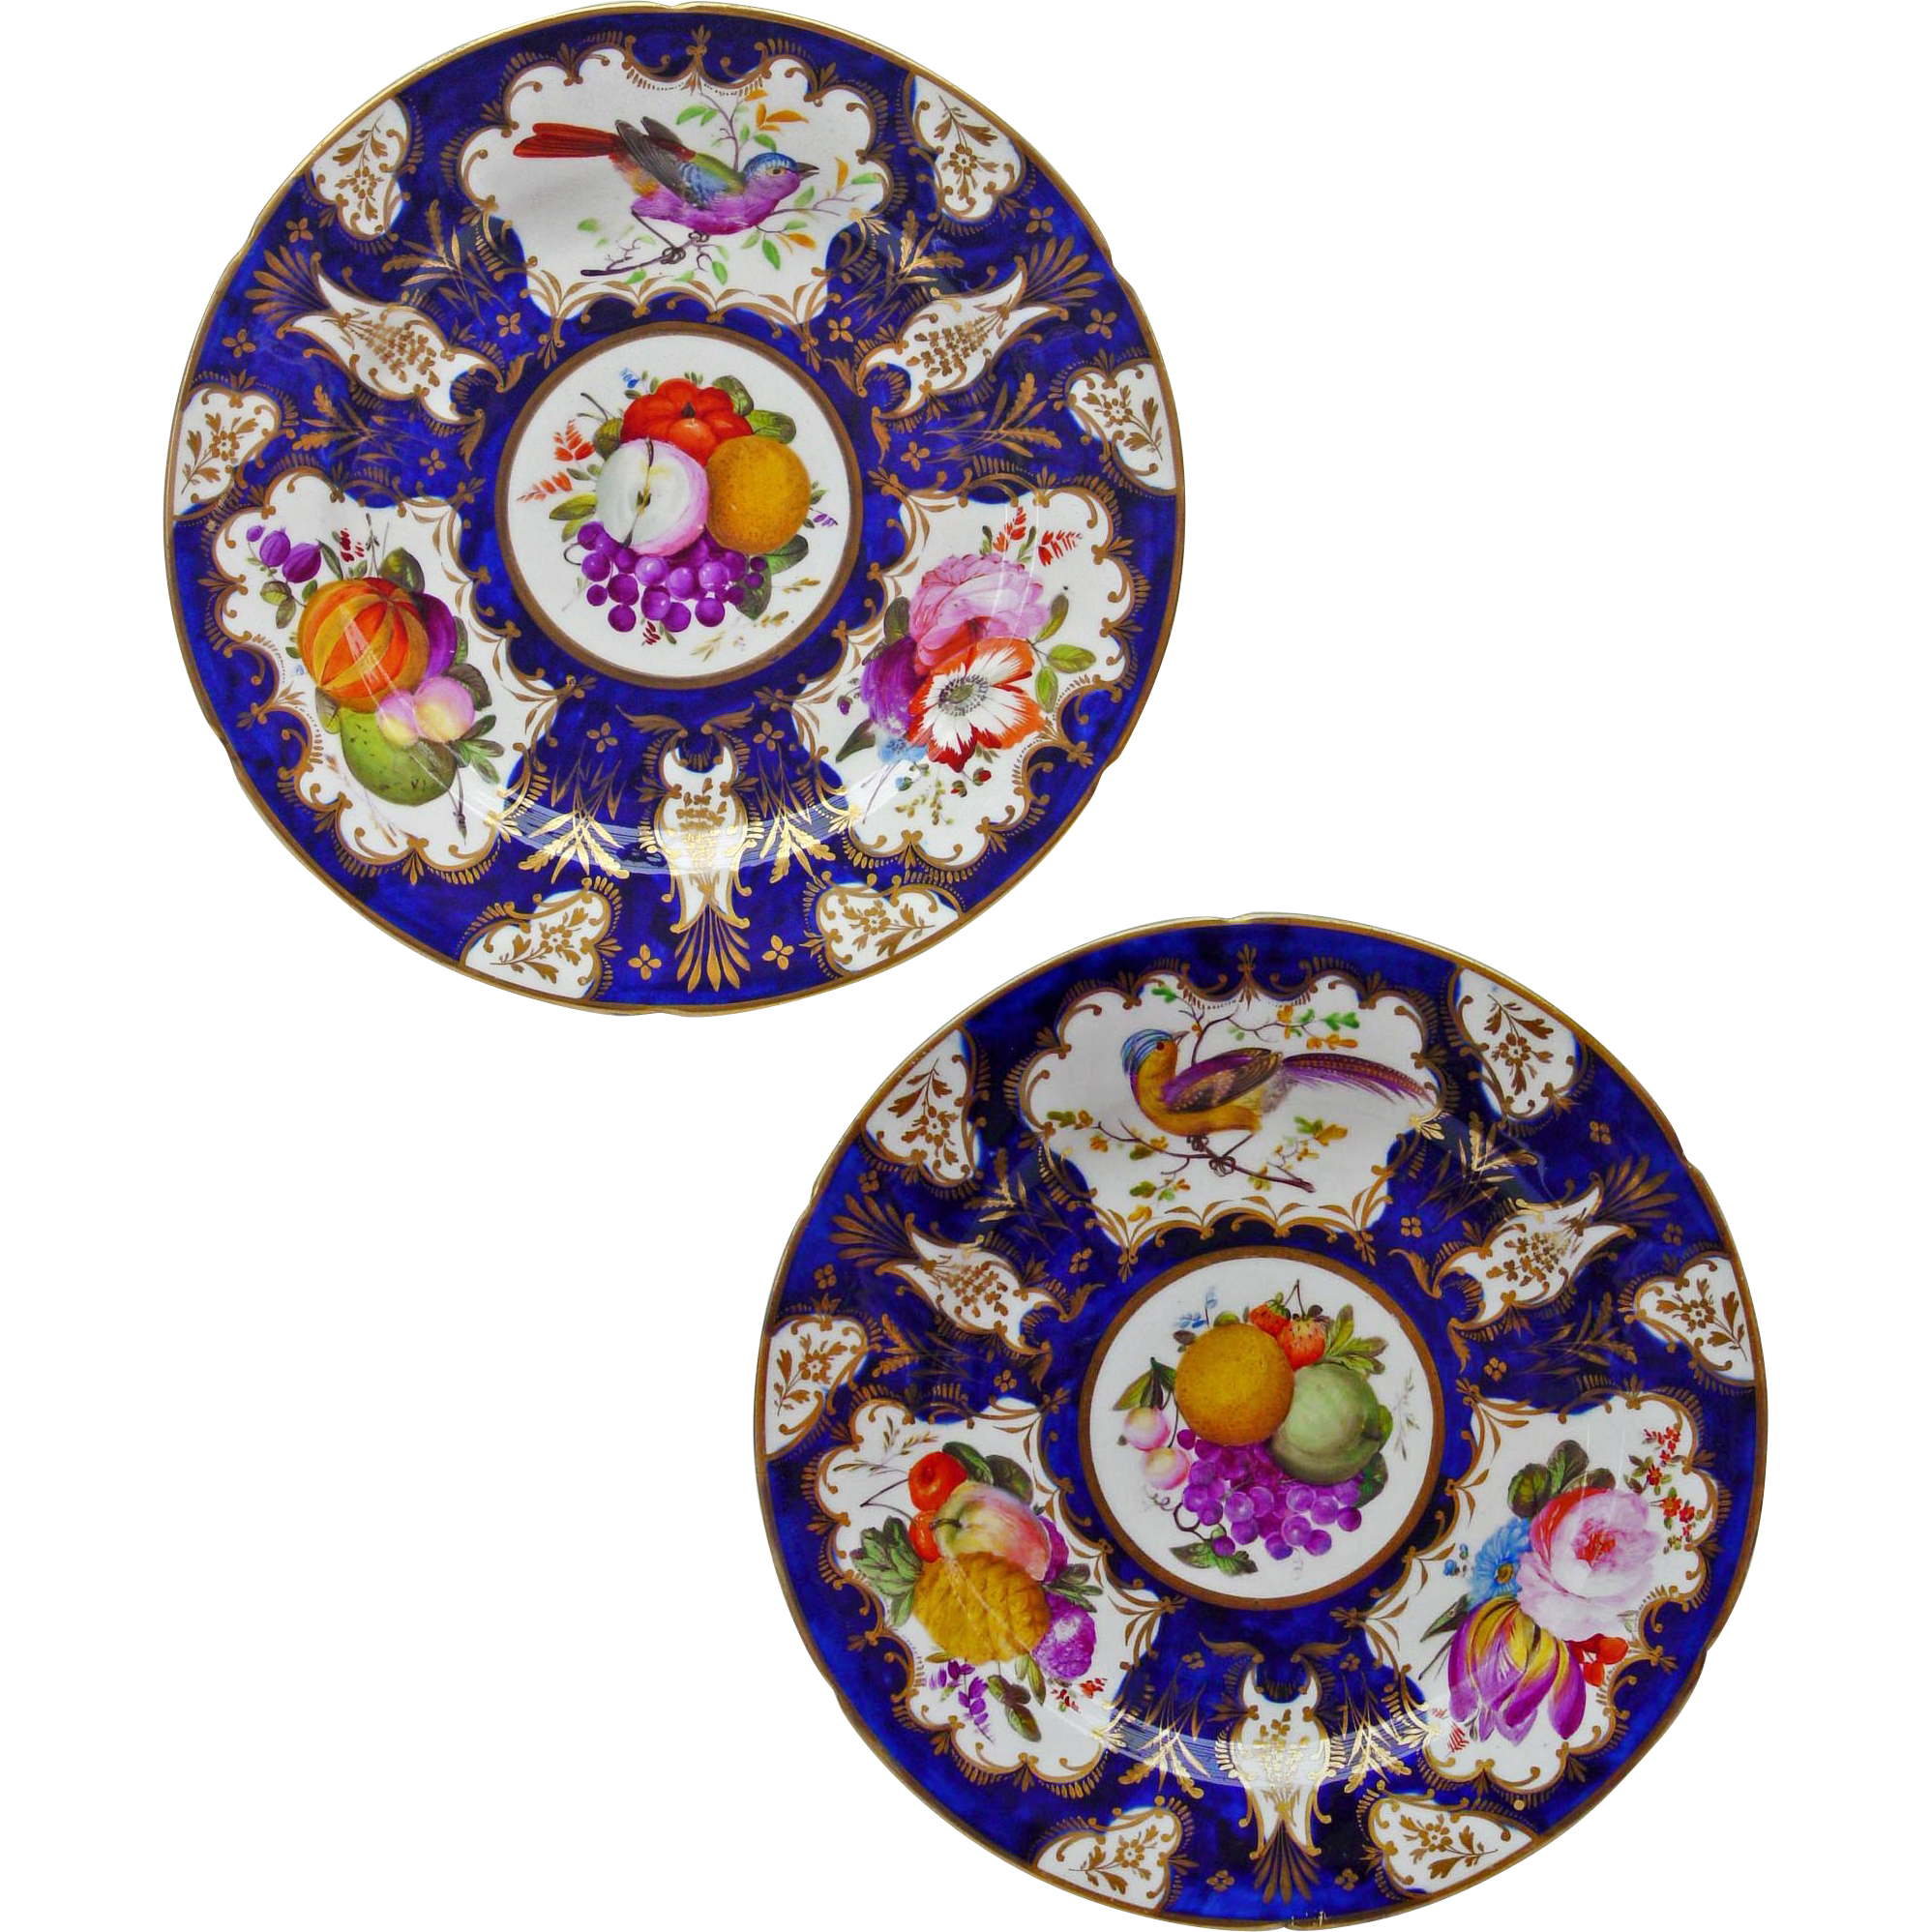 Pair Antique Coalport Cobalt Gilt Bird Fruits Flowers Wall Cabinet Plates - circa 1815 to 1825, England